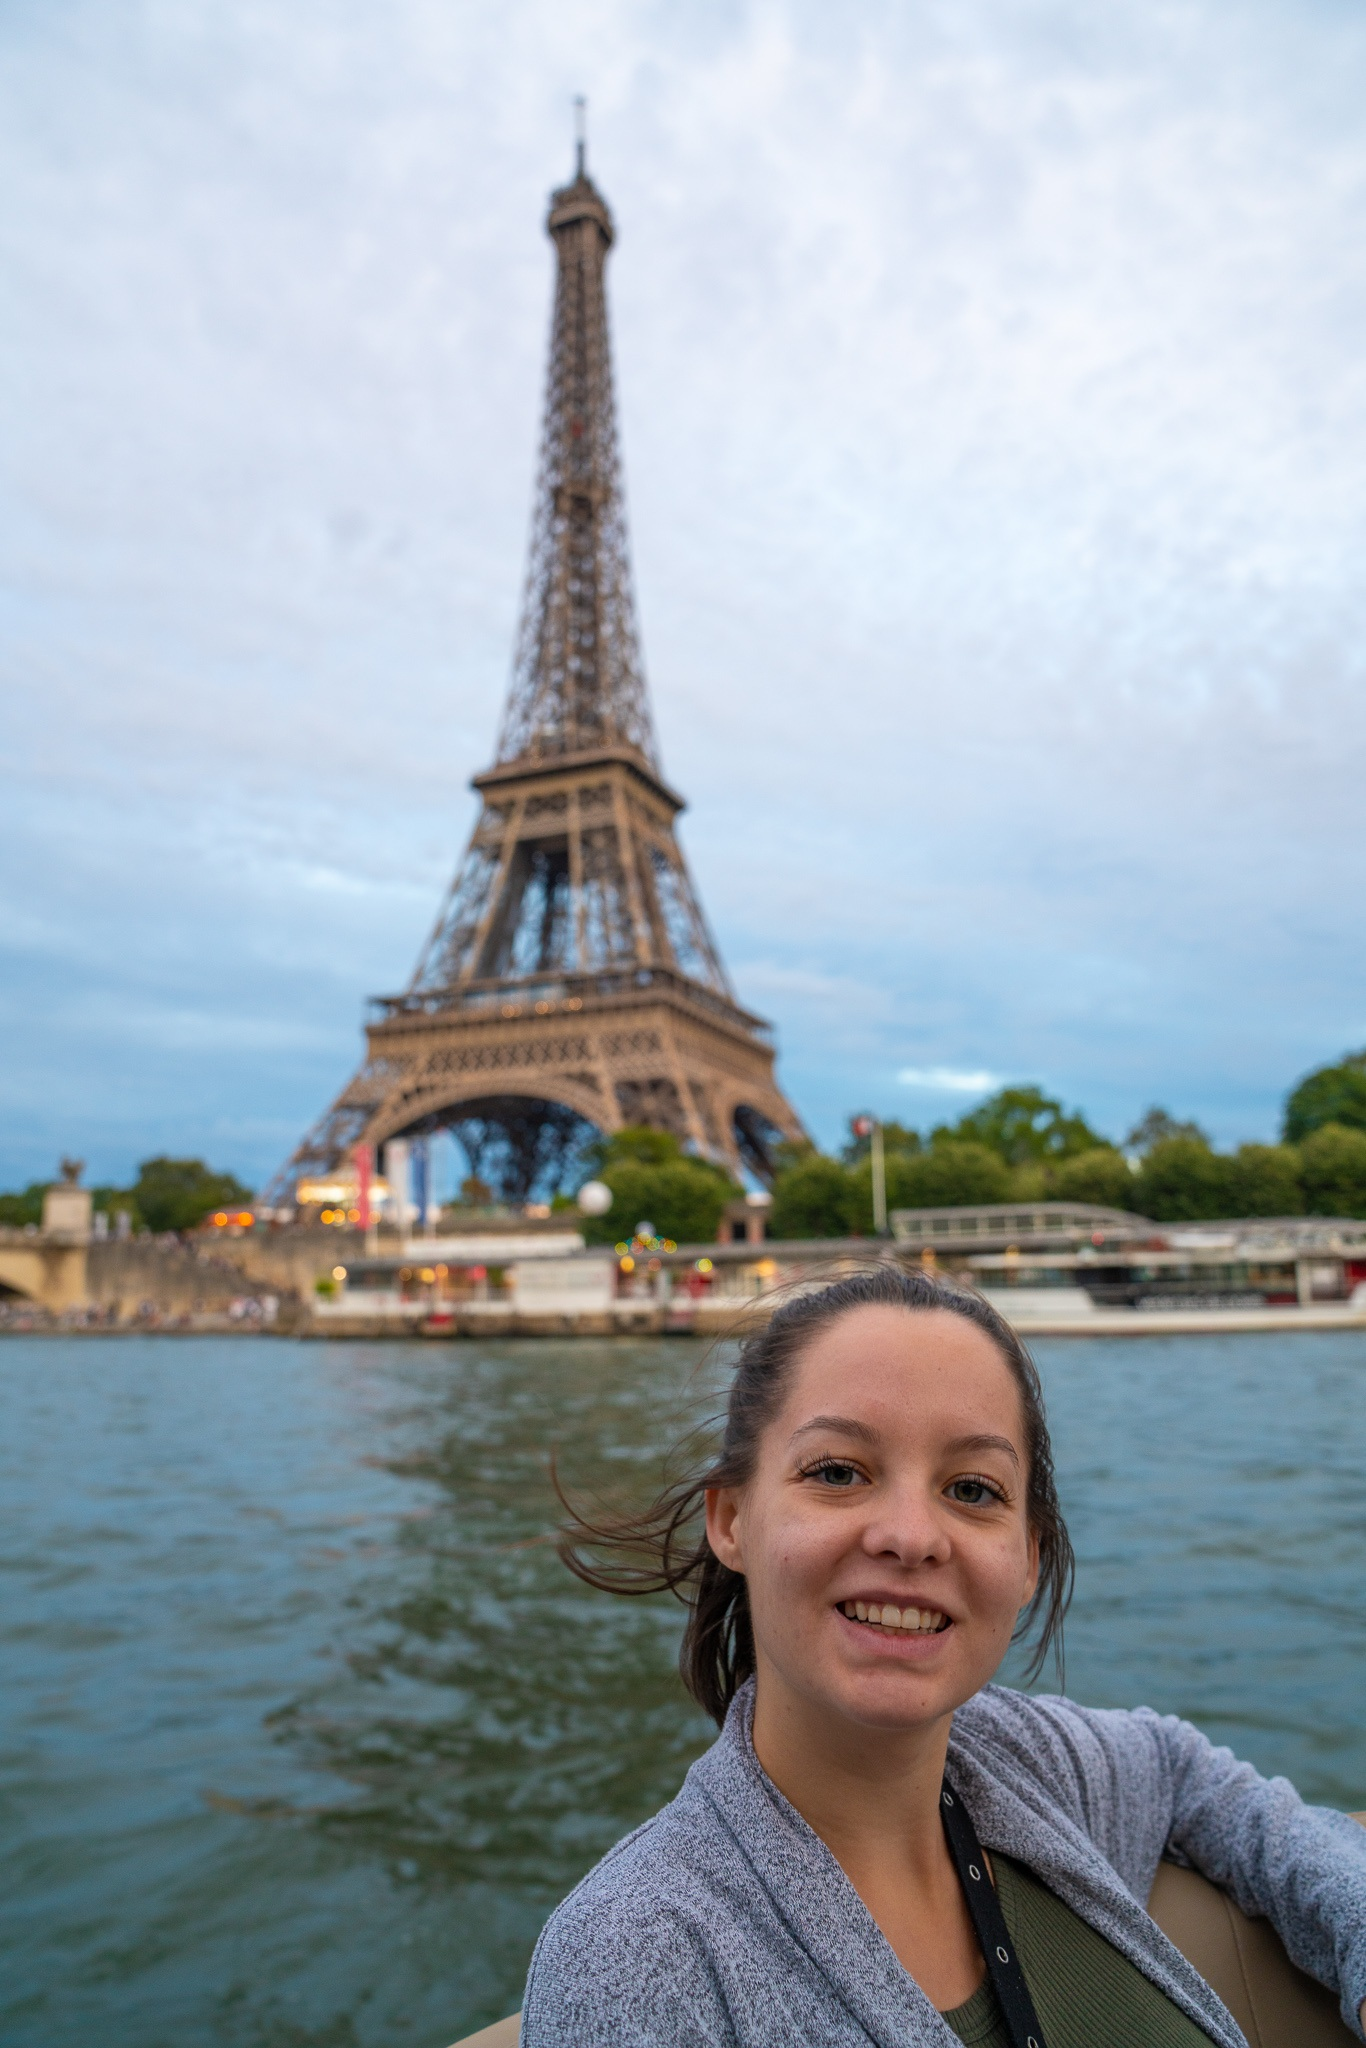 Teen girl in front of the Eiffel Tower on the Seine river in Paris, France